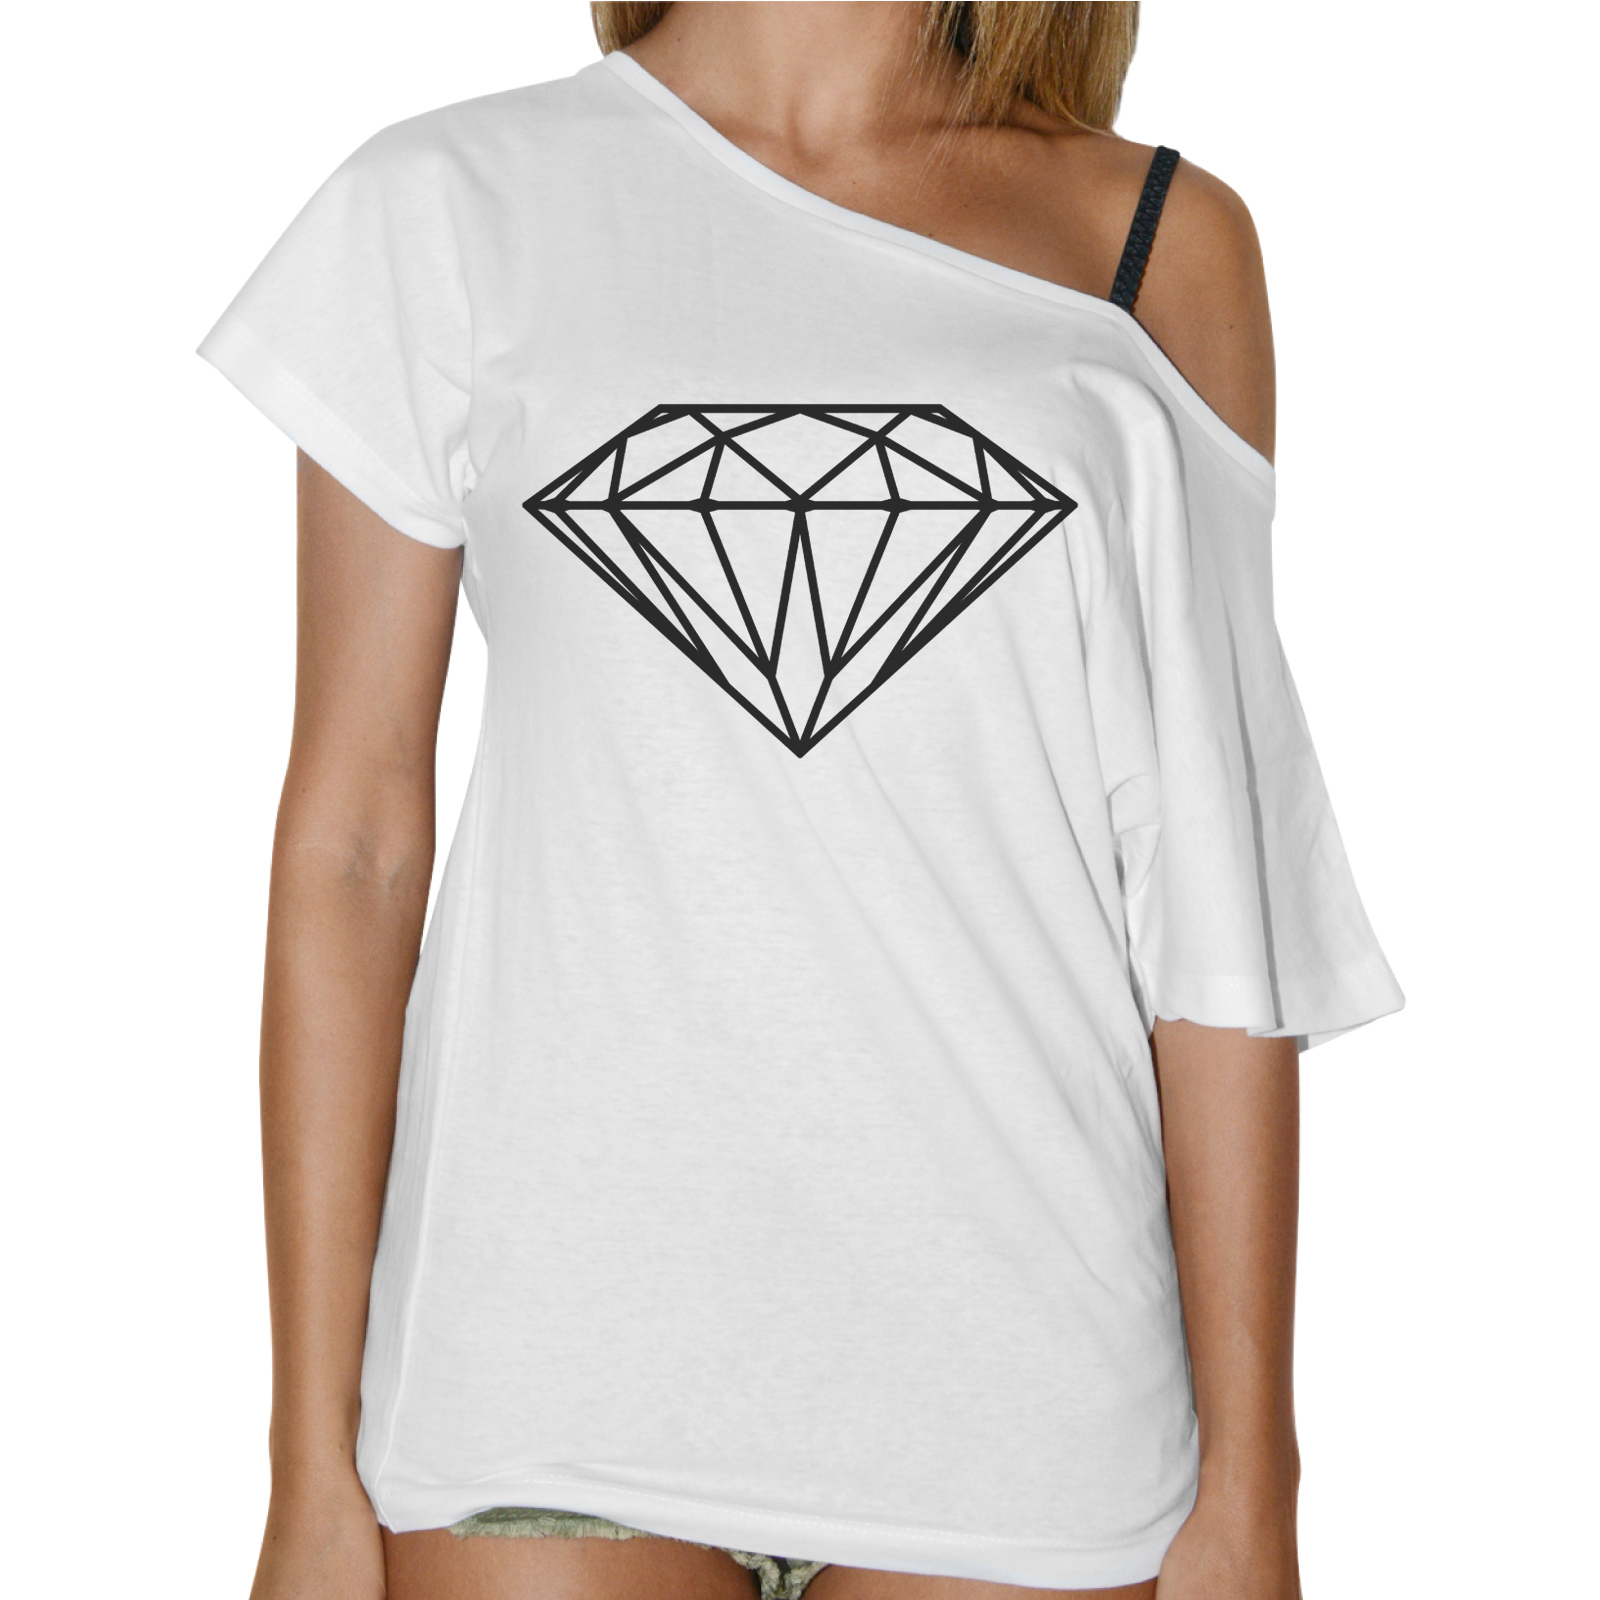 T-Shirt Donna Collo Barca DIAMANTE BASIC